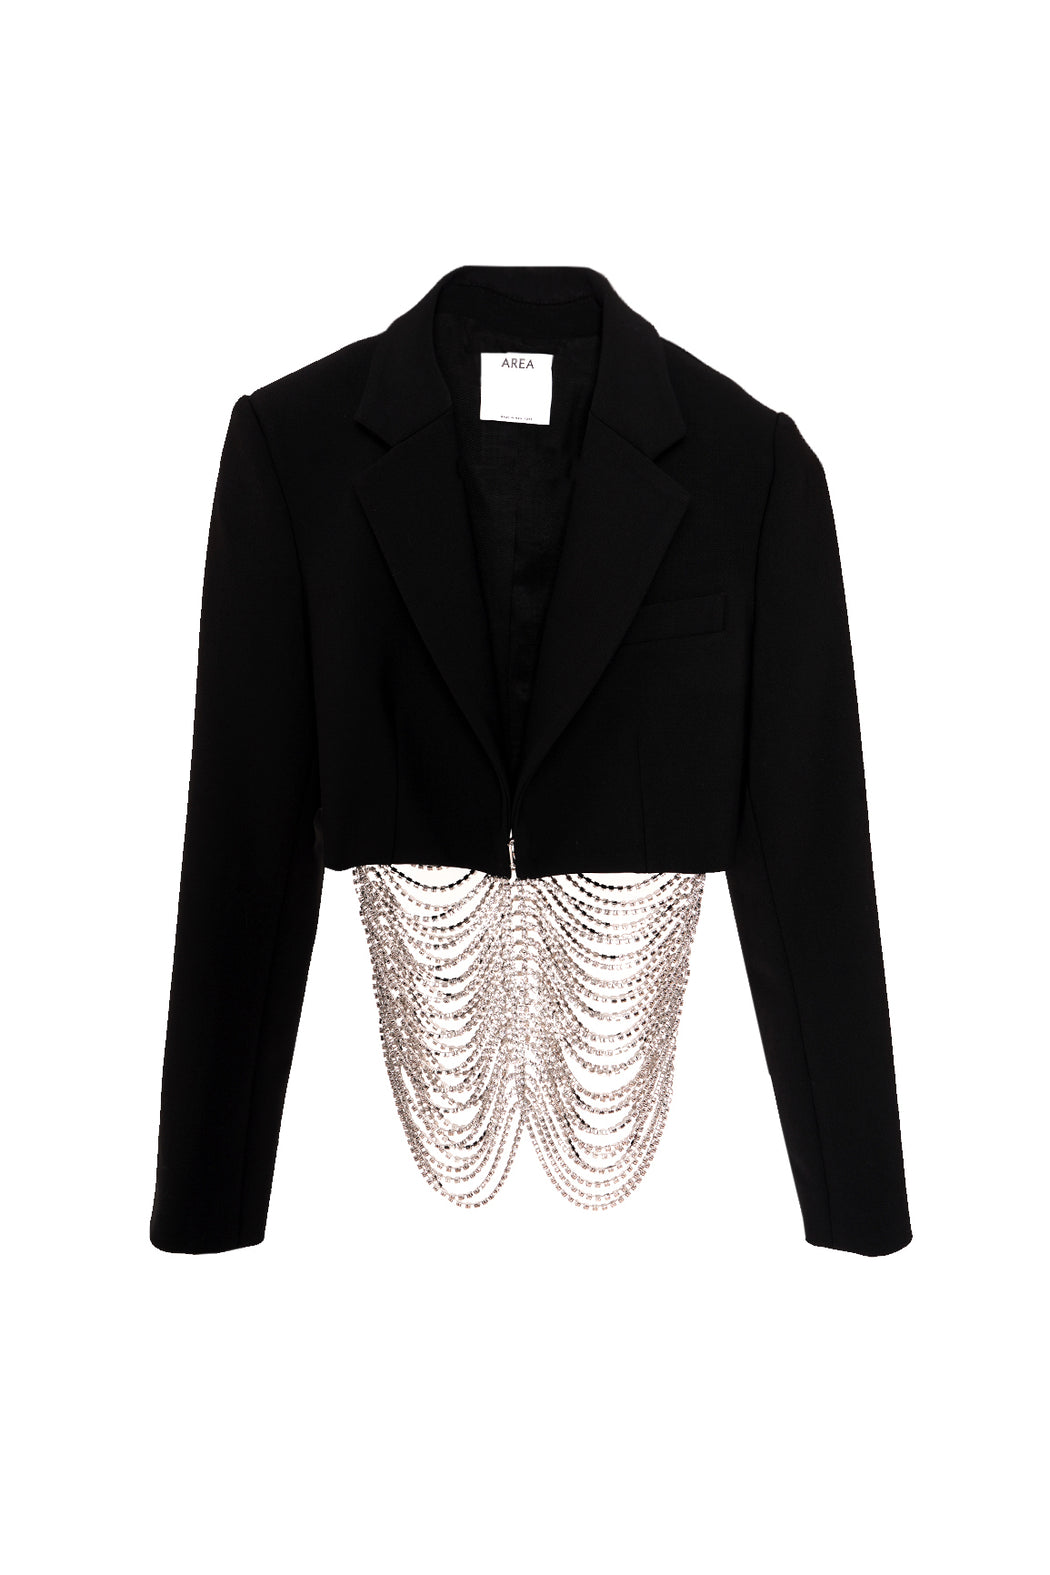 Crystal Cage Cropped Blazer - Black